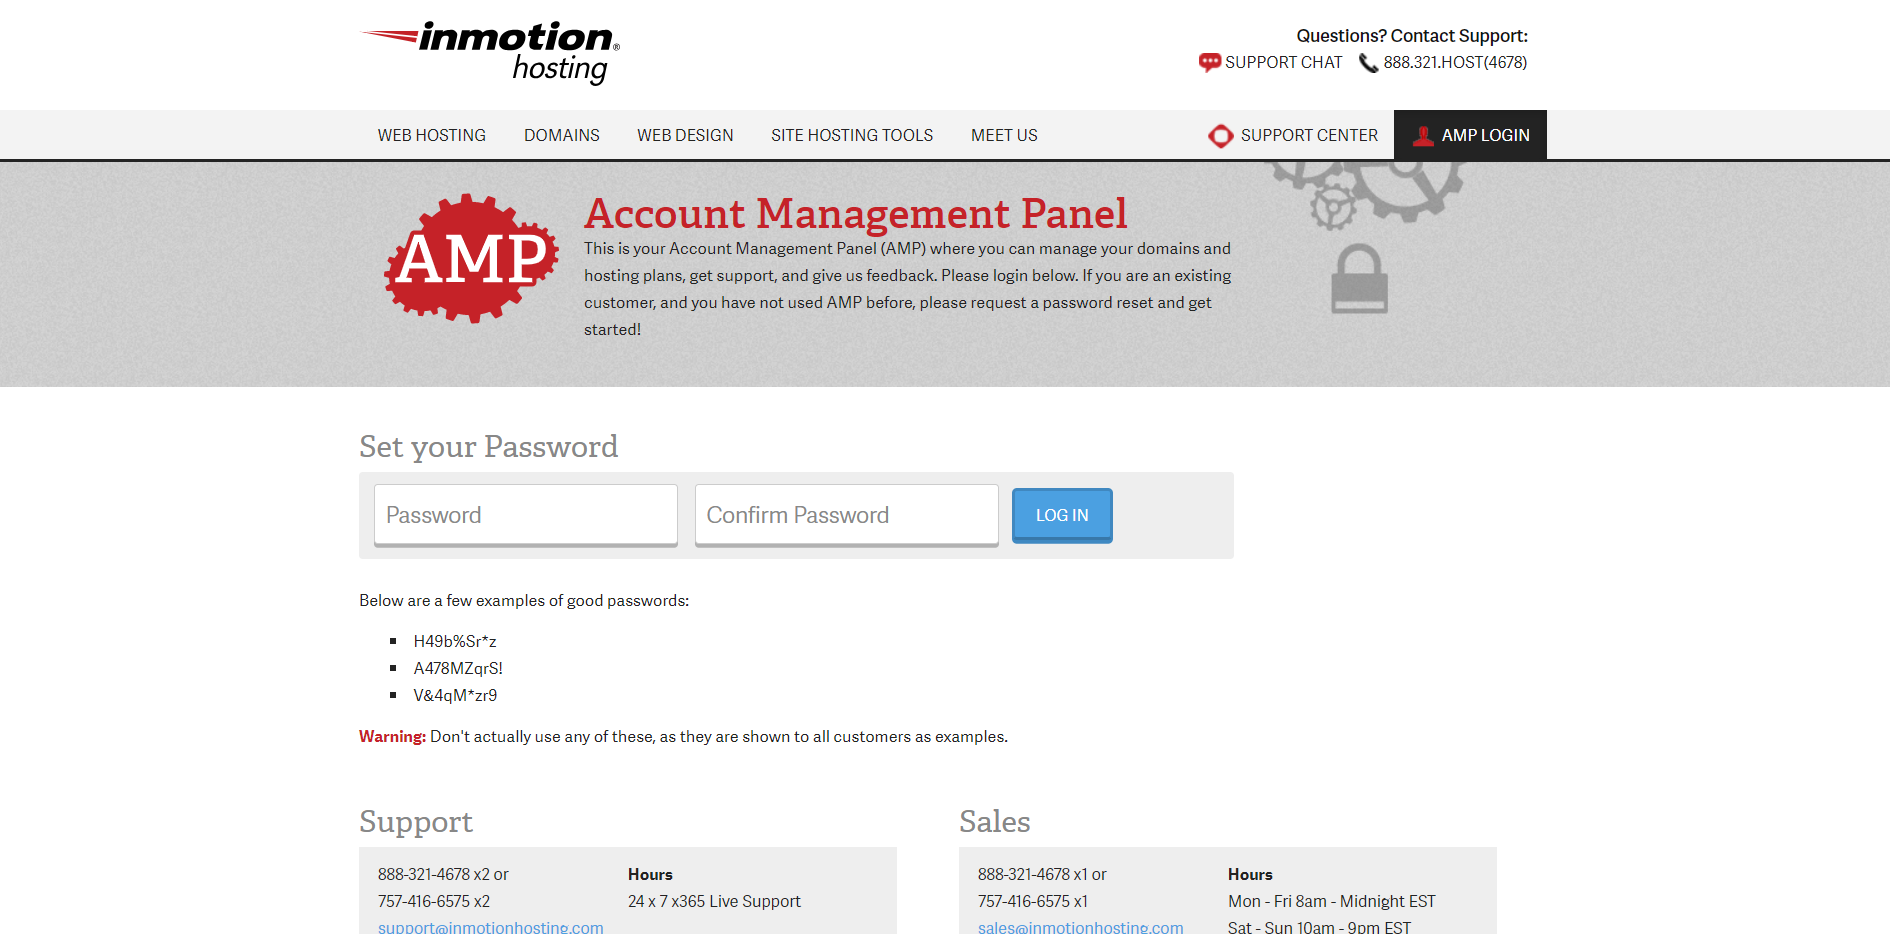 How to Create a New Account with InMotion Hosting-image14